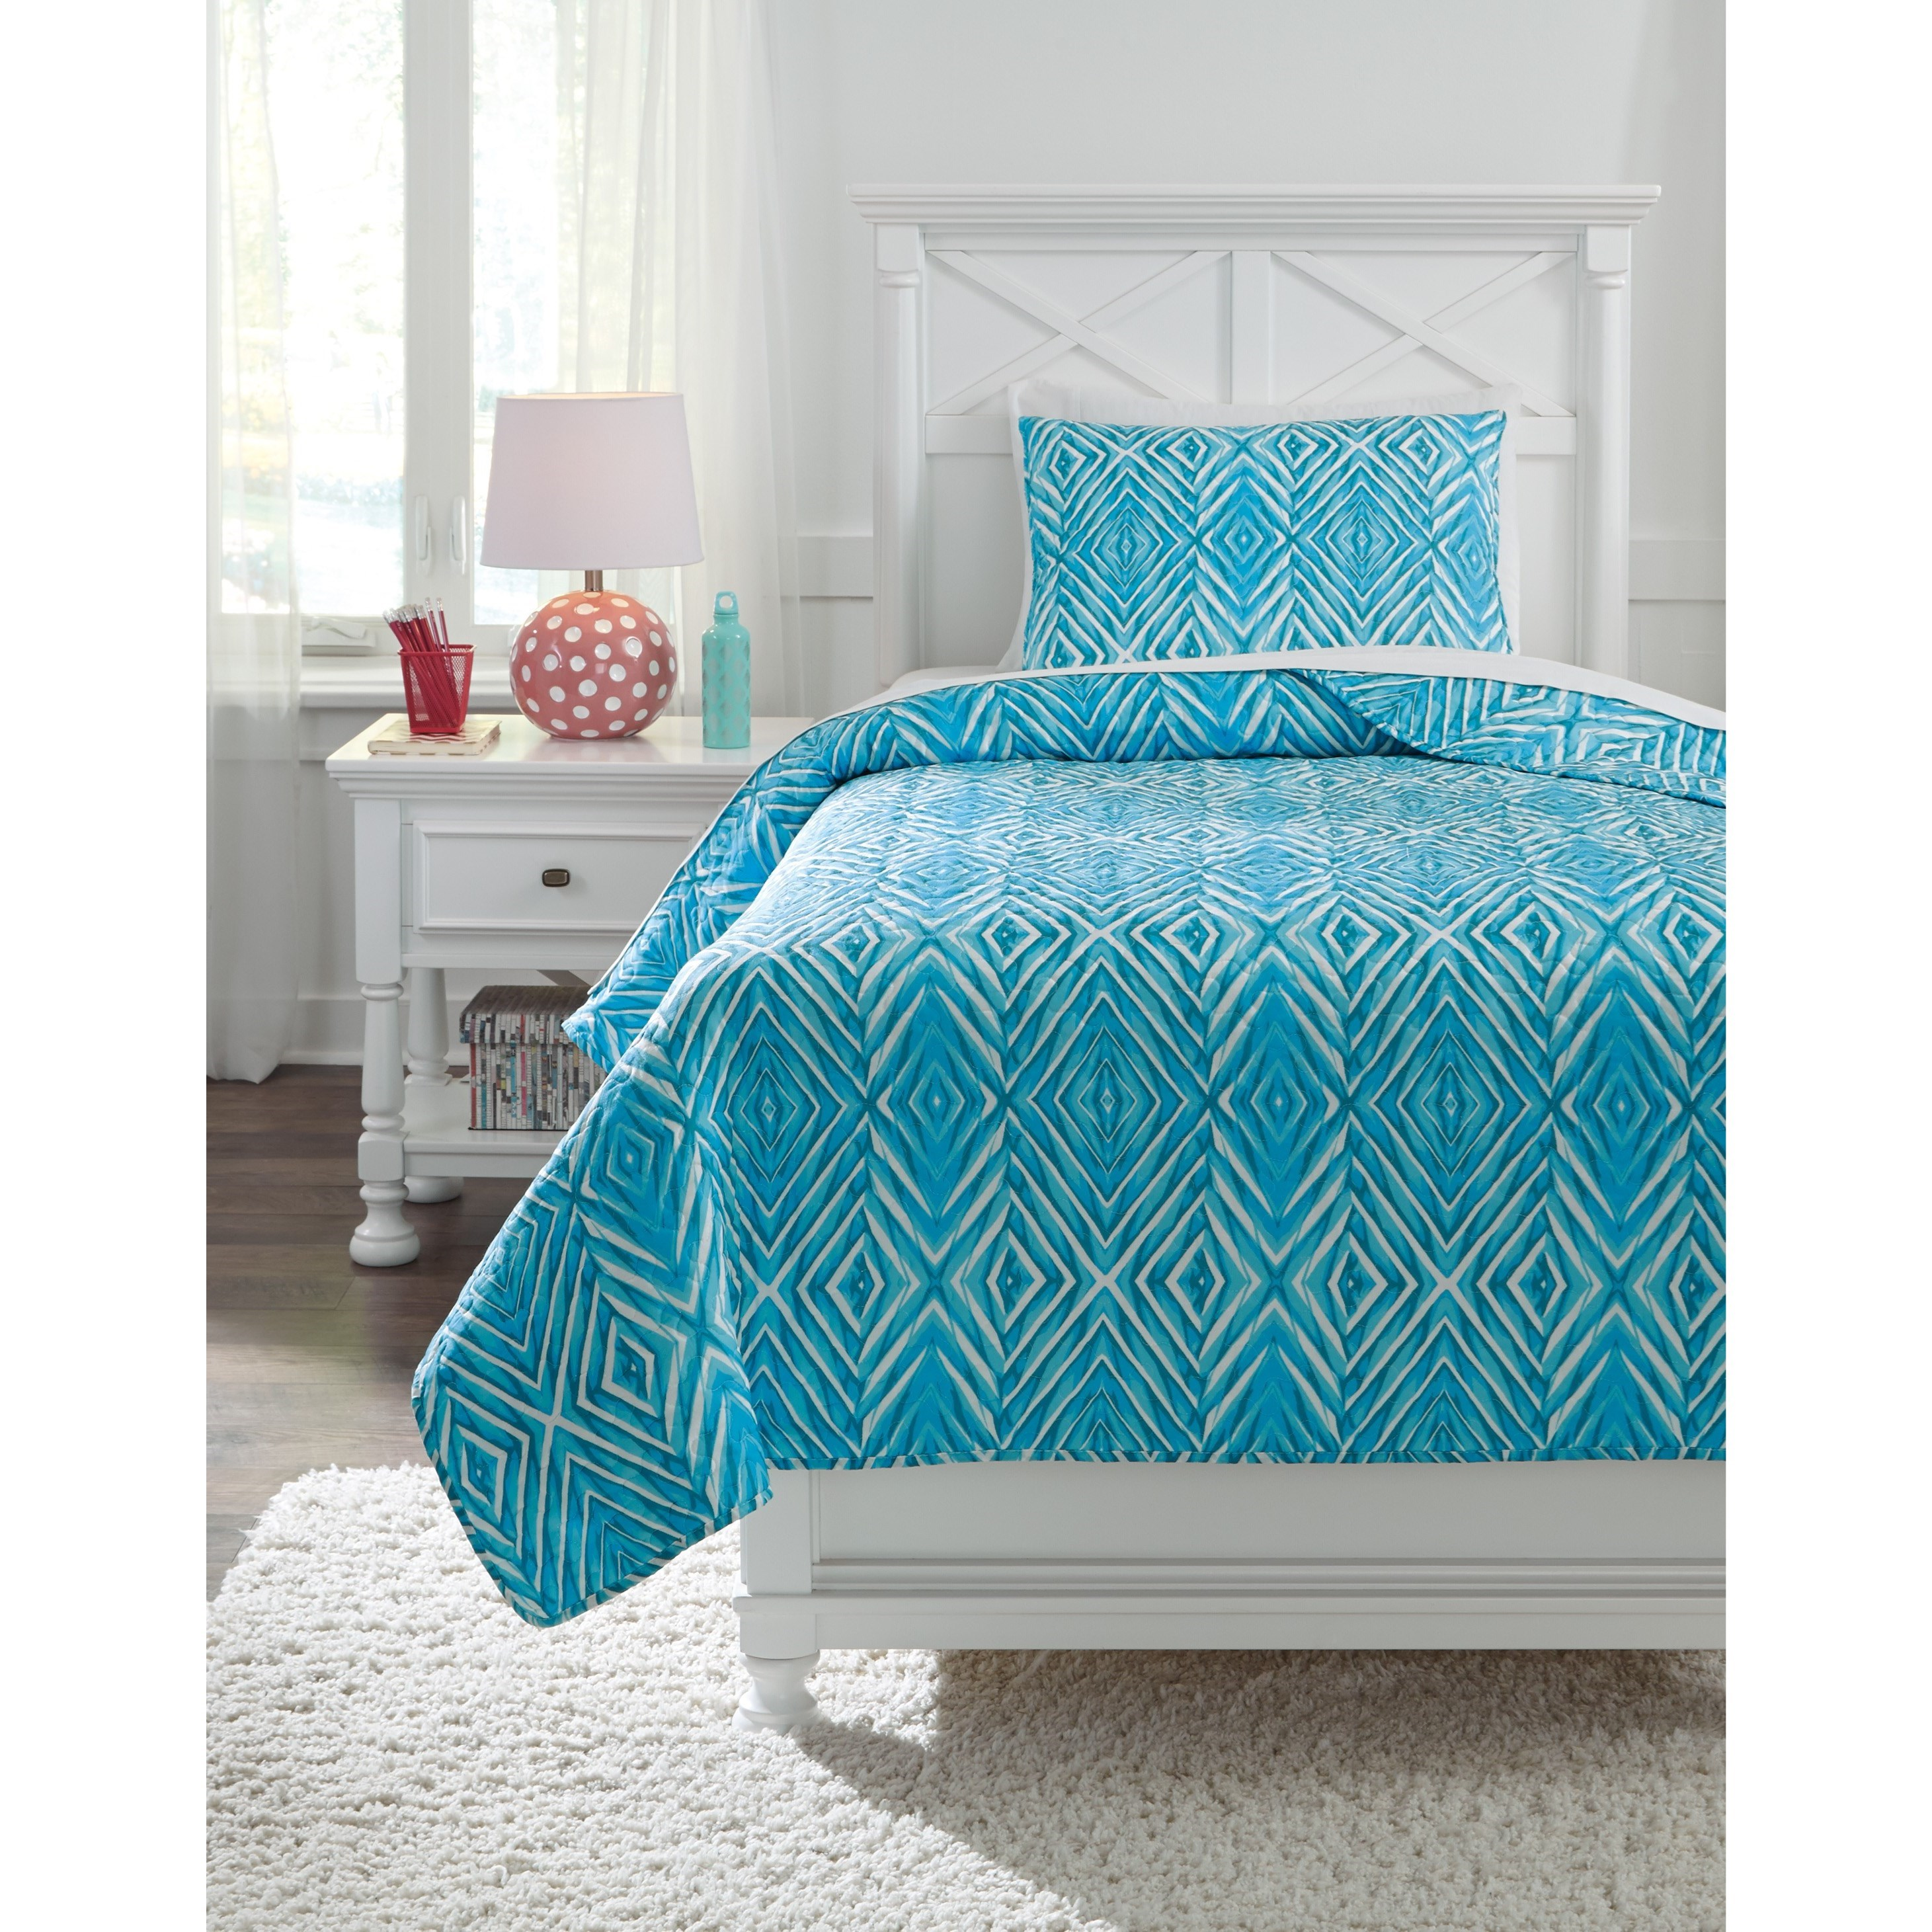 Signature Design by Ashley Bedding Sets Twin Jolana Turquoise Quilt Set - Item Number: Q319001T